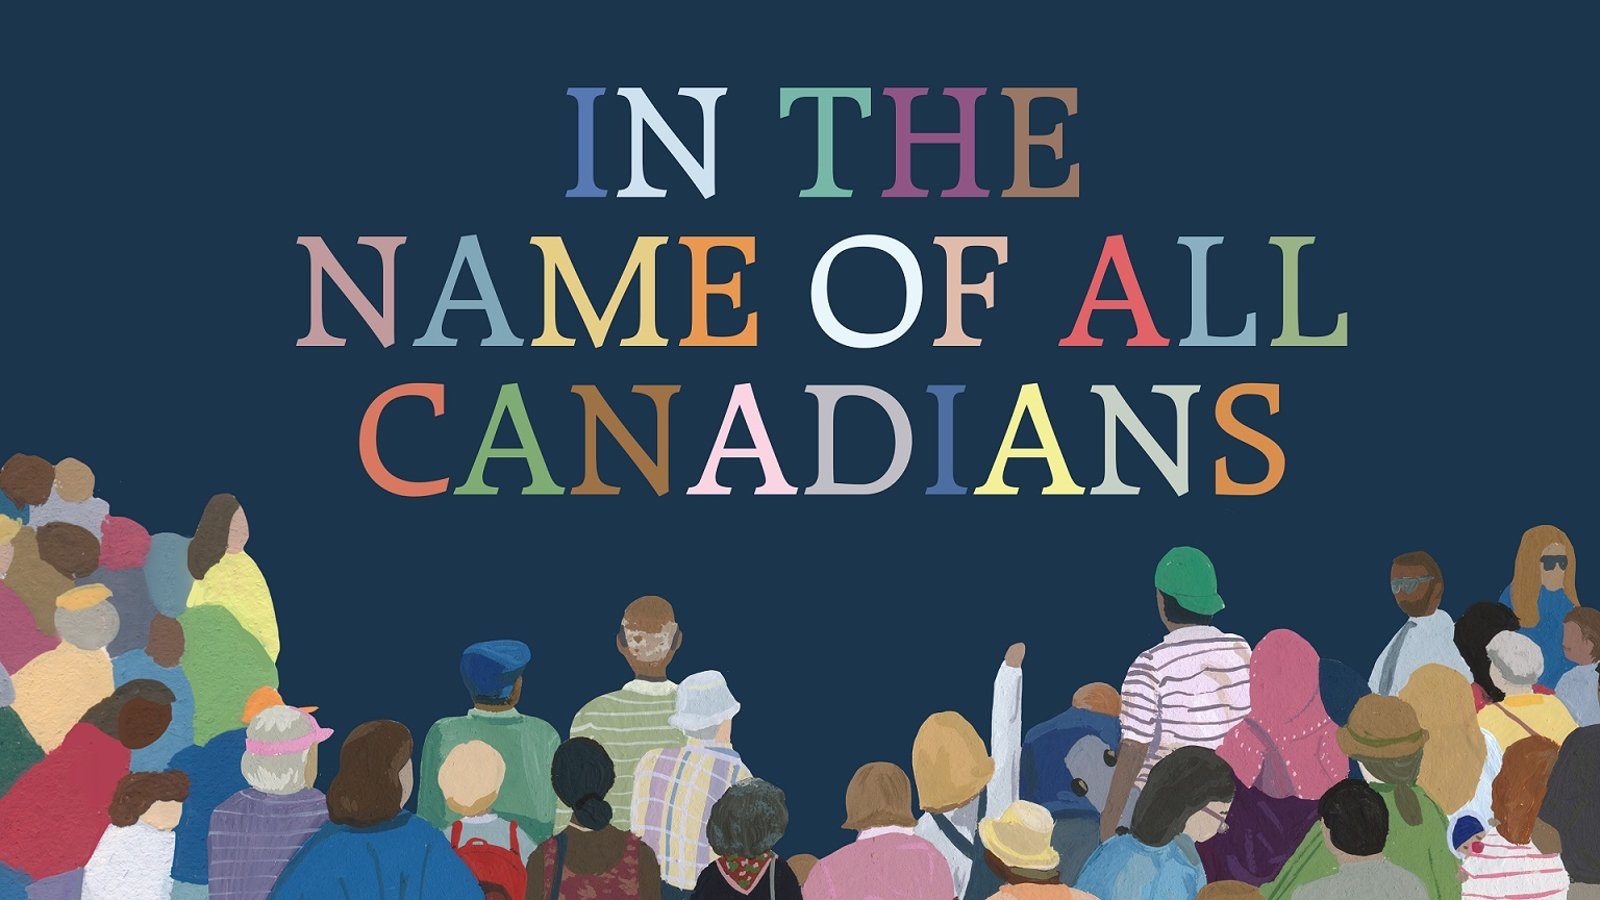 In the Name of All Canadians - The Canadian Socio-Political Atmosphere